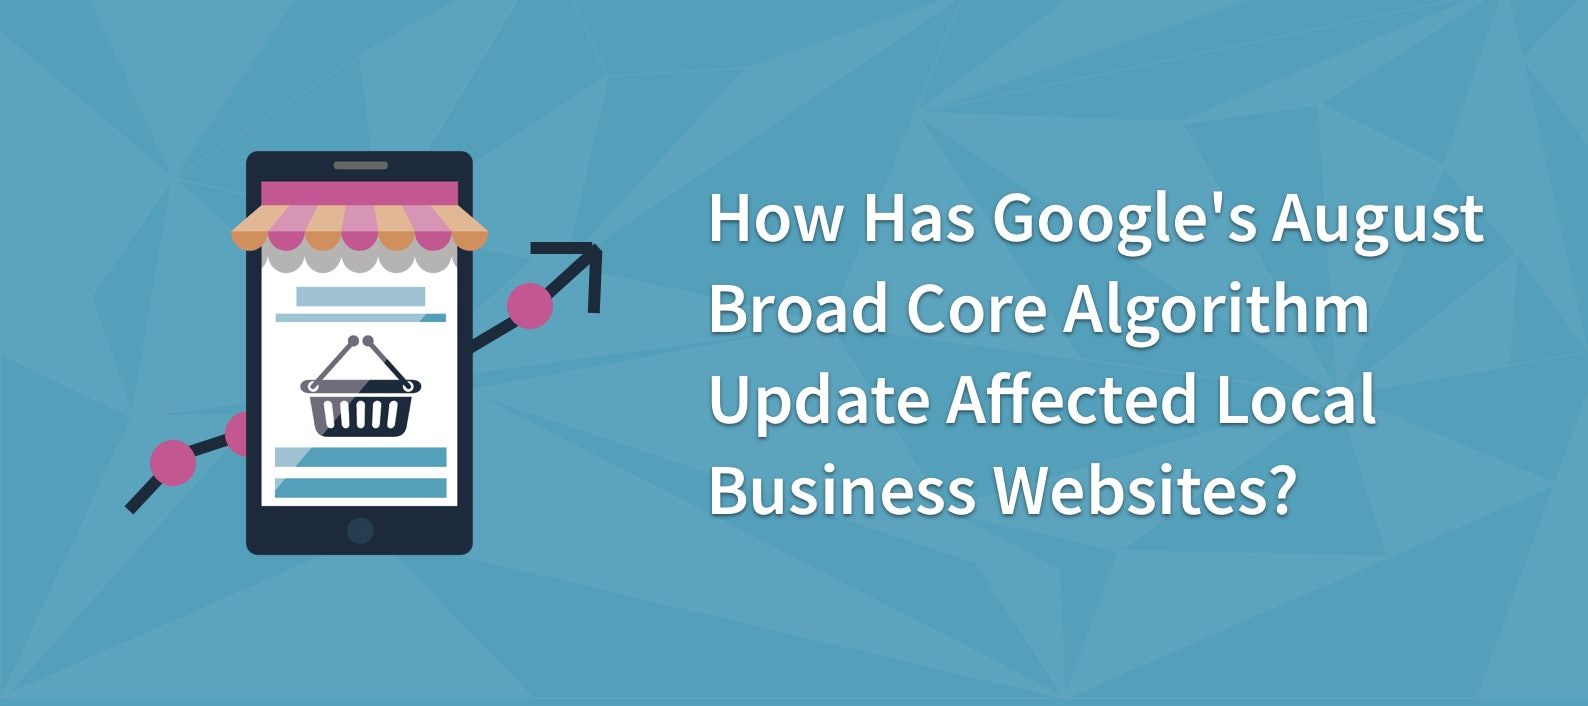 How Has Google's August Broad Core Algorithm Update Affected Local Business Websites?